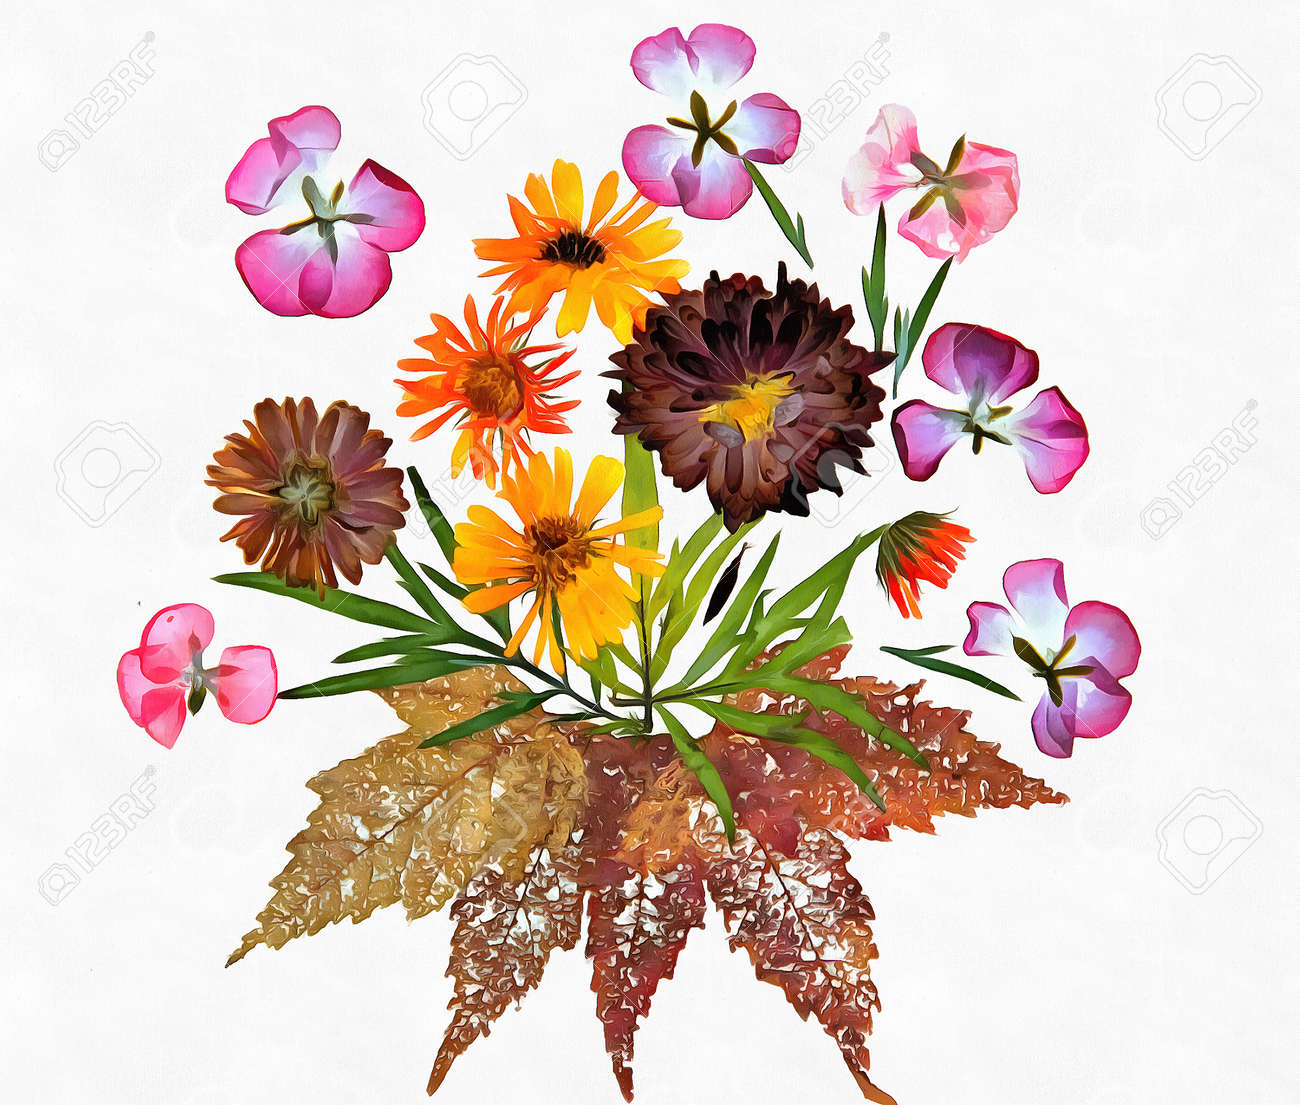 Drawing Of Dried Fall Leaves And Flowers On A Lattice Of Thin Stock Photo Picture And Royalty Free Image Image 54177295